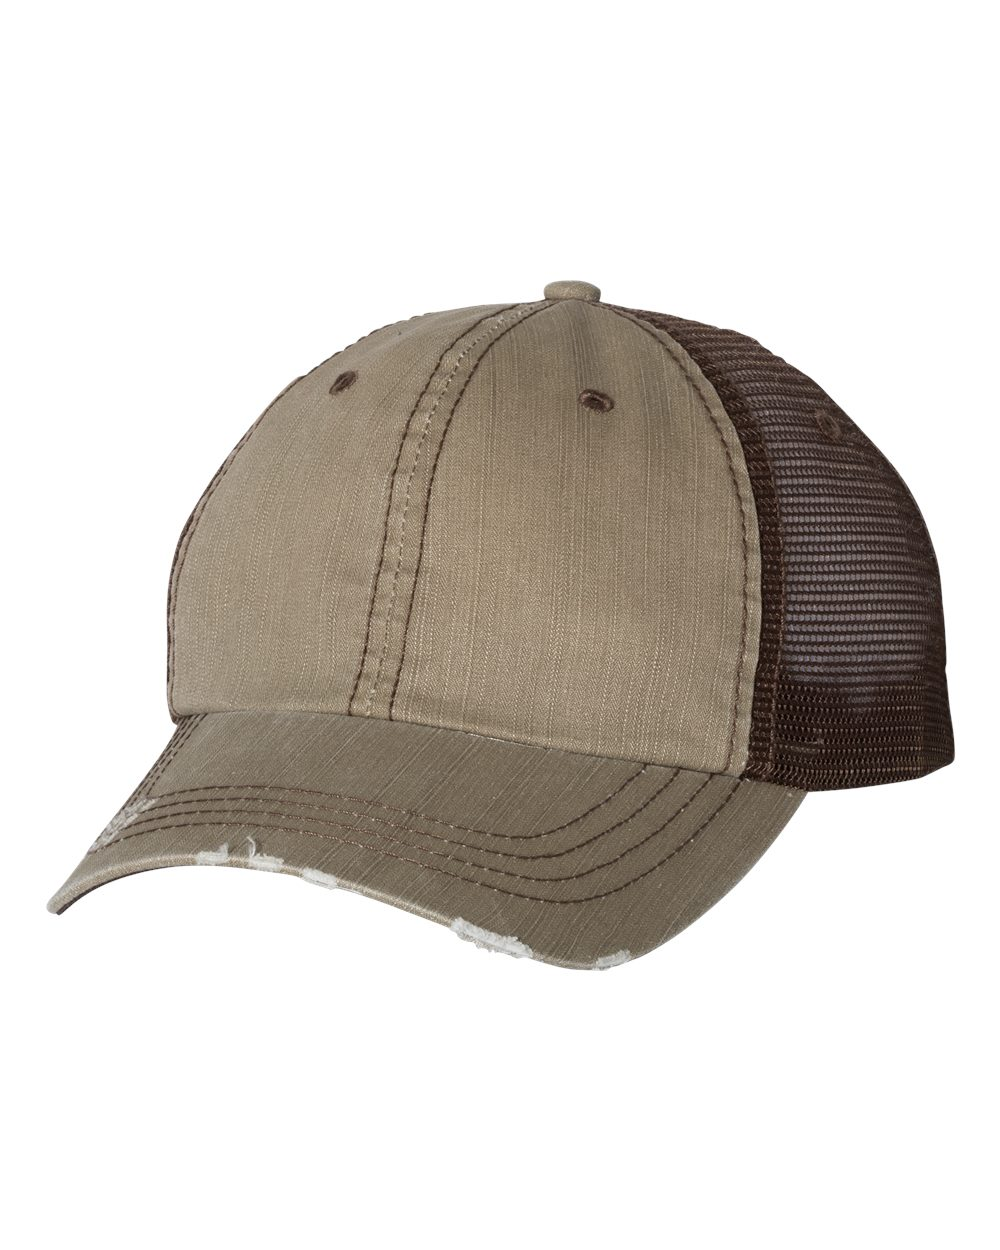 KHAKI AND BROWN TRUCKER CAP WITH LOGO CAP CUSTOMIZED